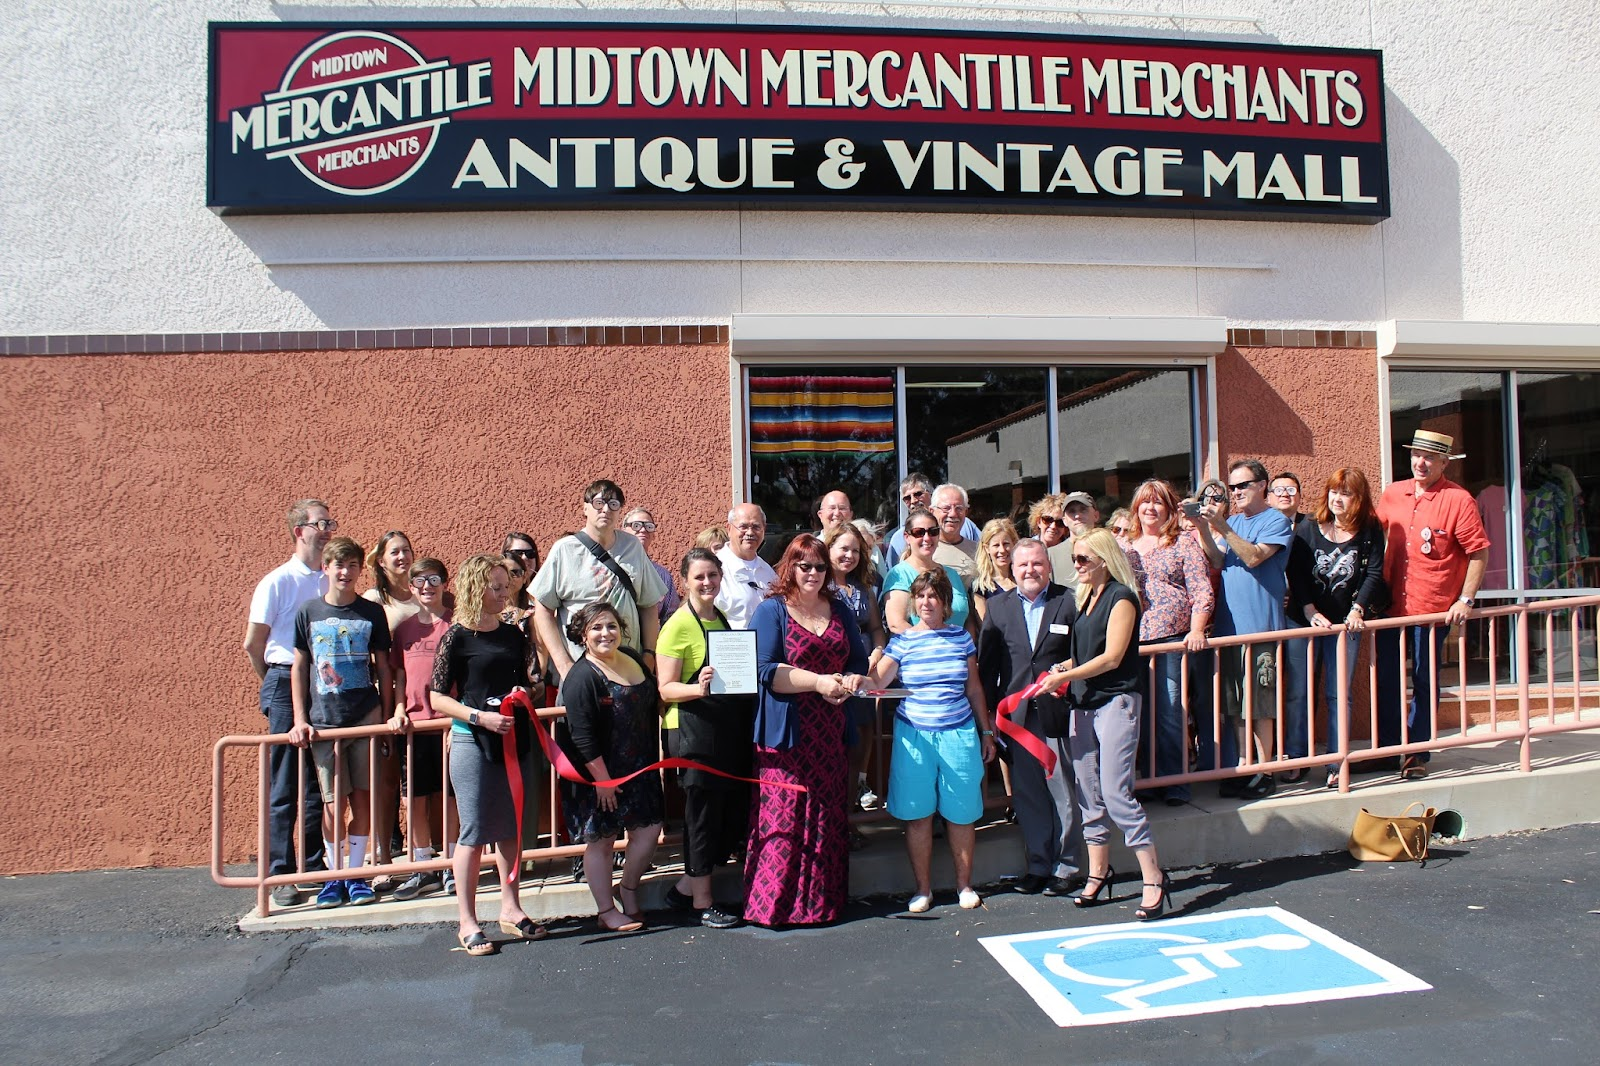 Congratulations to Midtown Mercantile Merchants located at 4443 E. Speedway Boulevard on their Grand Opening!  The new Antique and Vintage Mall is a unique and exciting concept in antique malls.  An eclectic mix of dealers will sell various antiques, vintage, salvage, mid-century items, art work, furniture, industrial and far too many collectibles to mention!